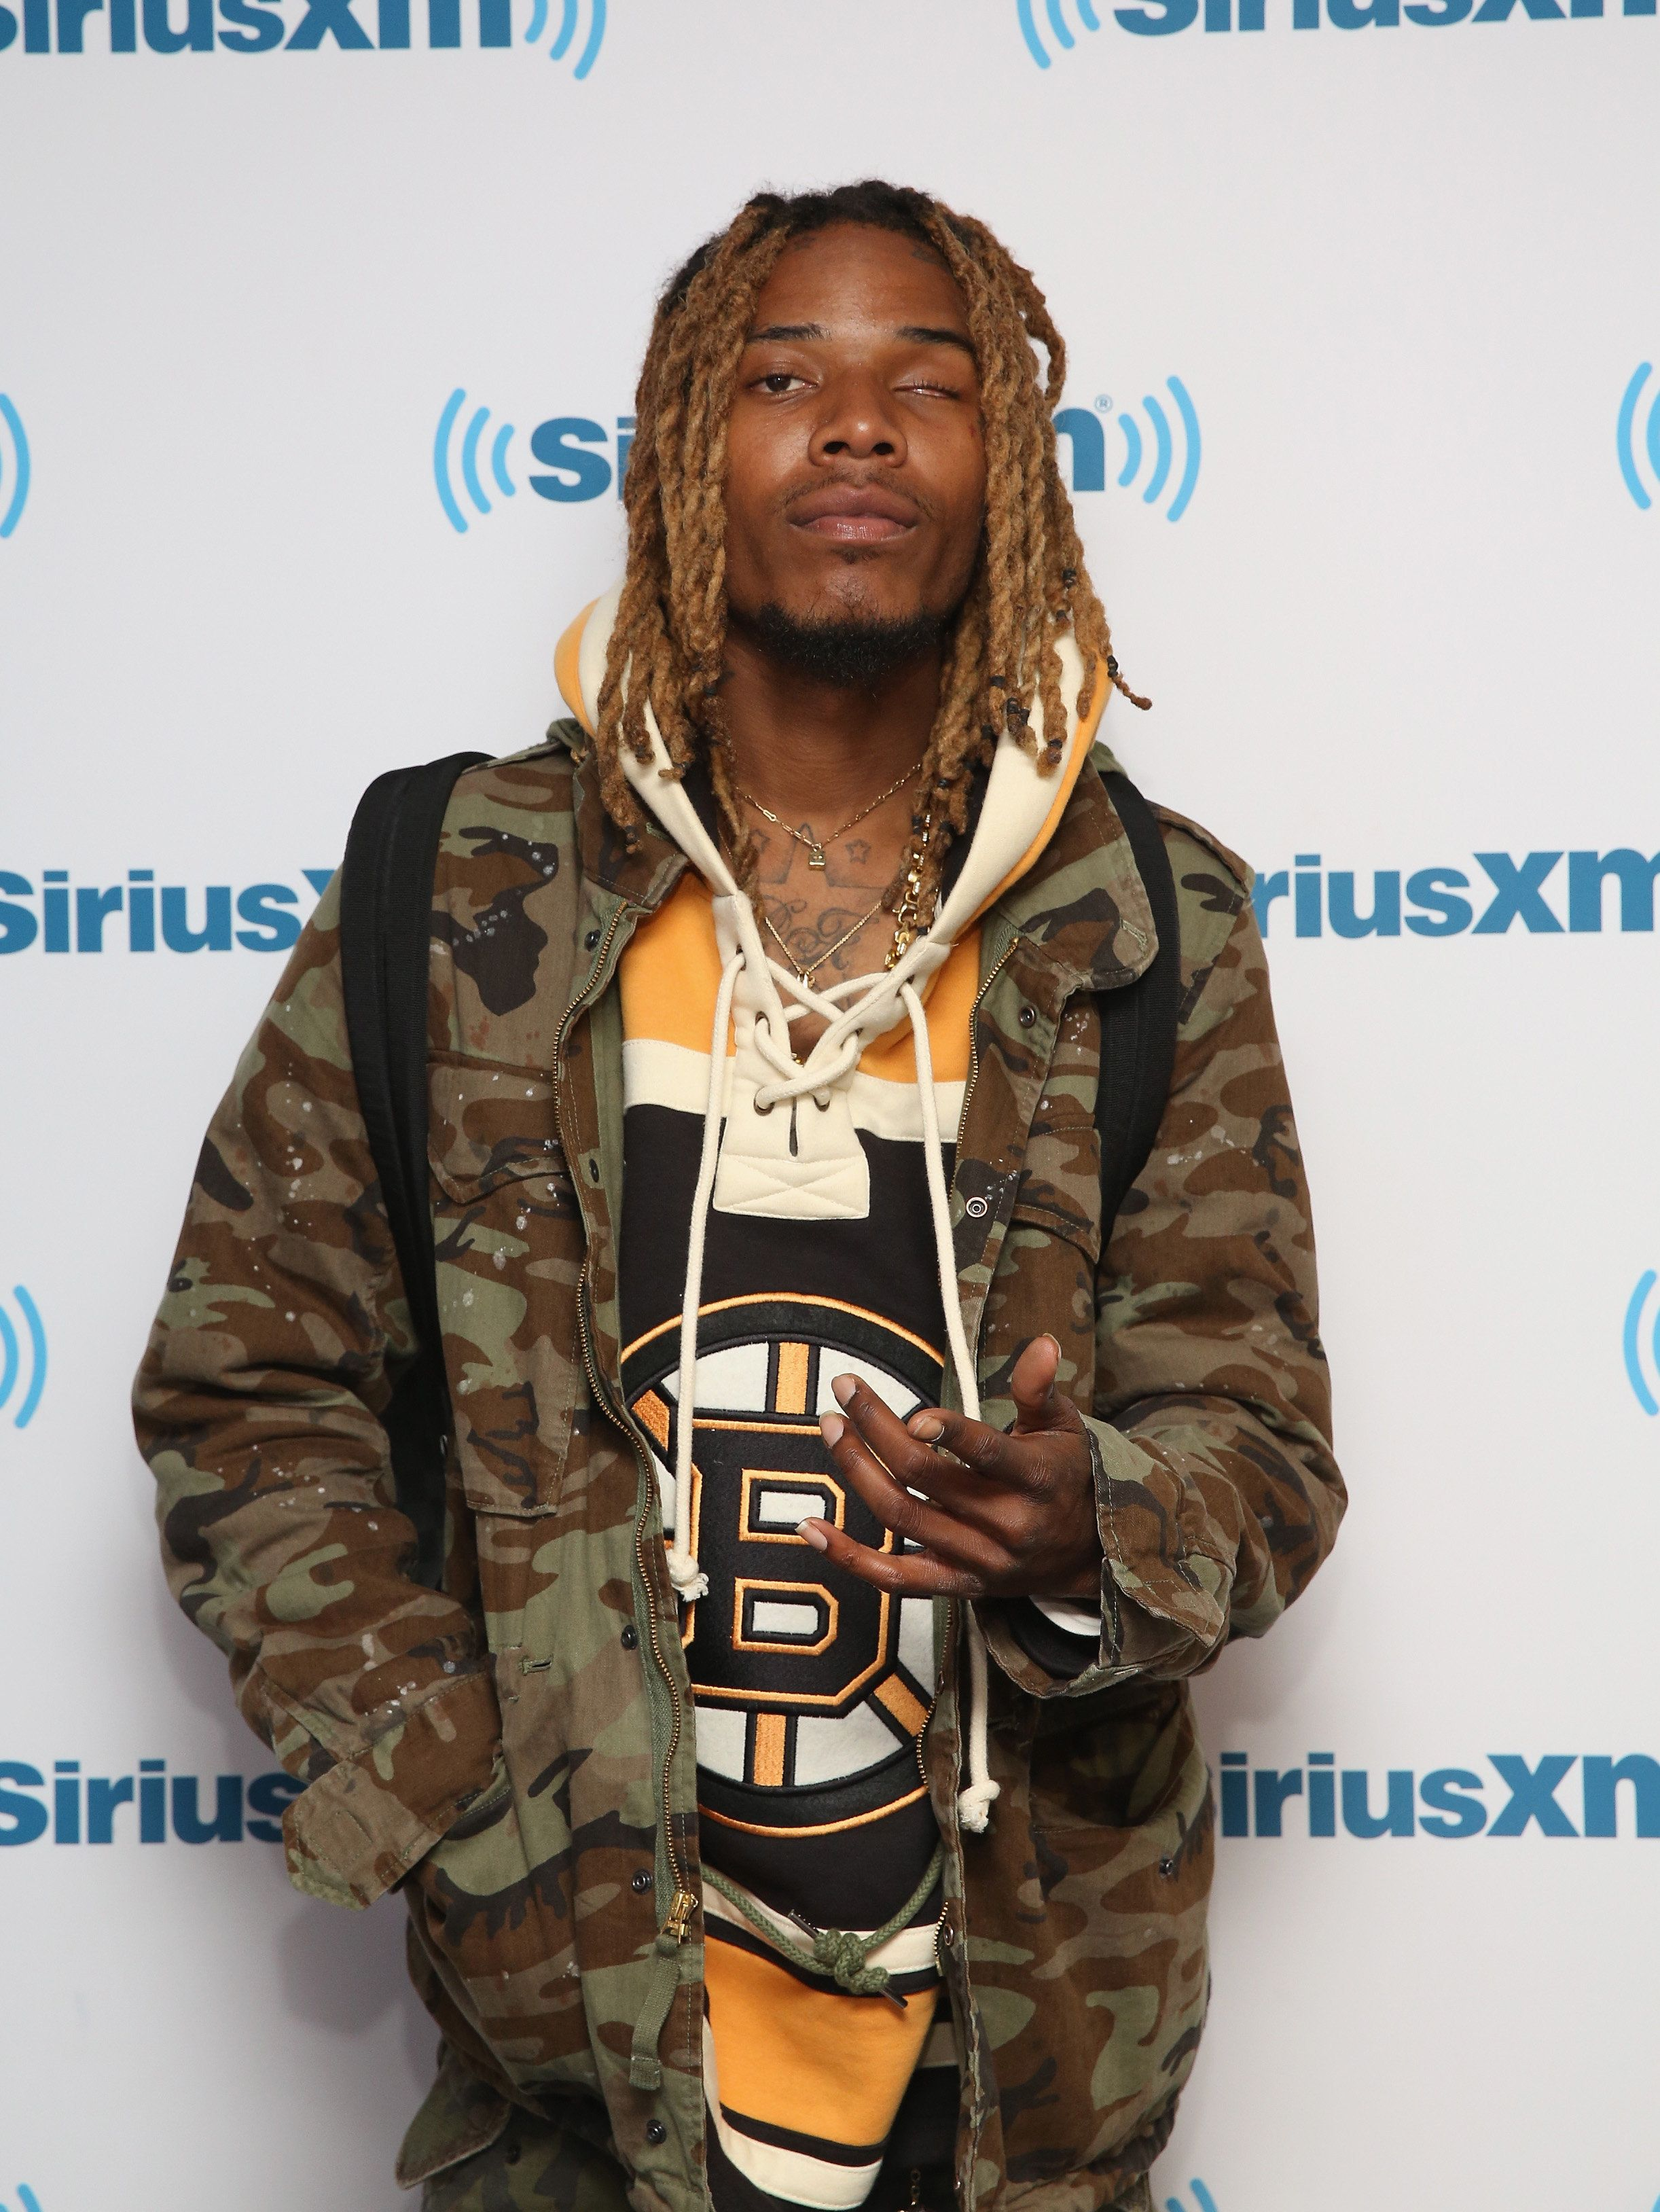 NEW YORK, NY - SEPTEMBER 25:  Fetty Wap visits at SiriusXM Studios on September 25, 2015 in New York City.  (Photo by Robin Marchant/Getty Images)